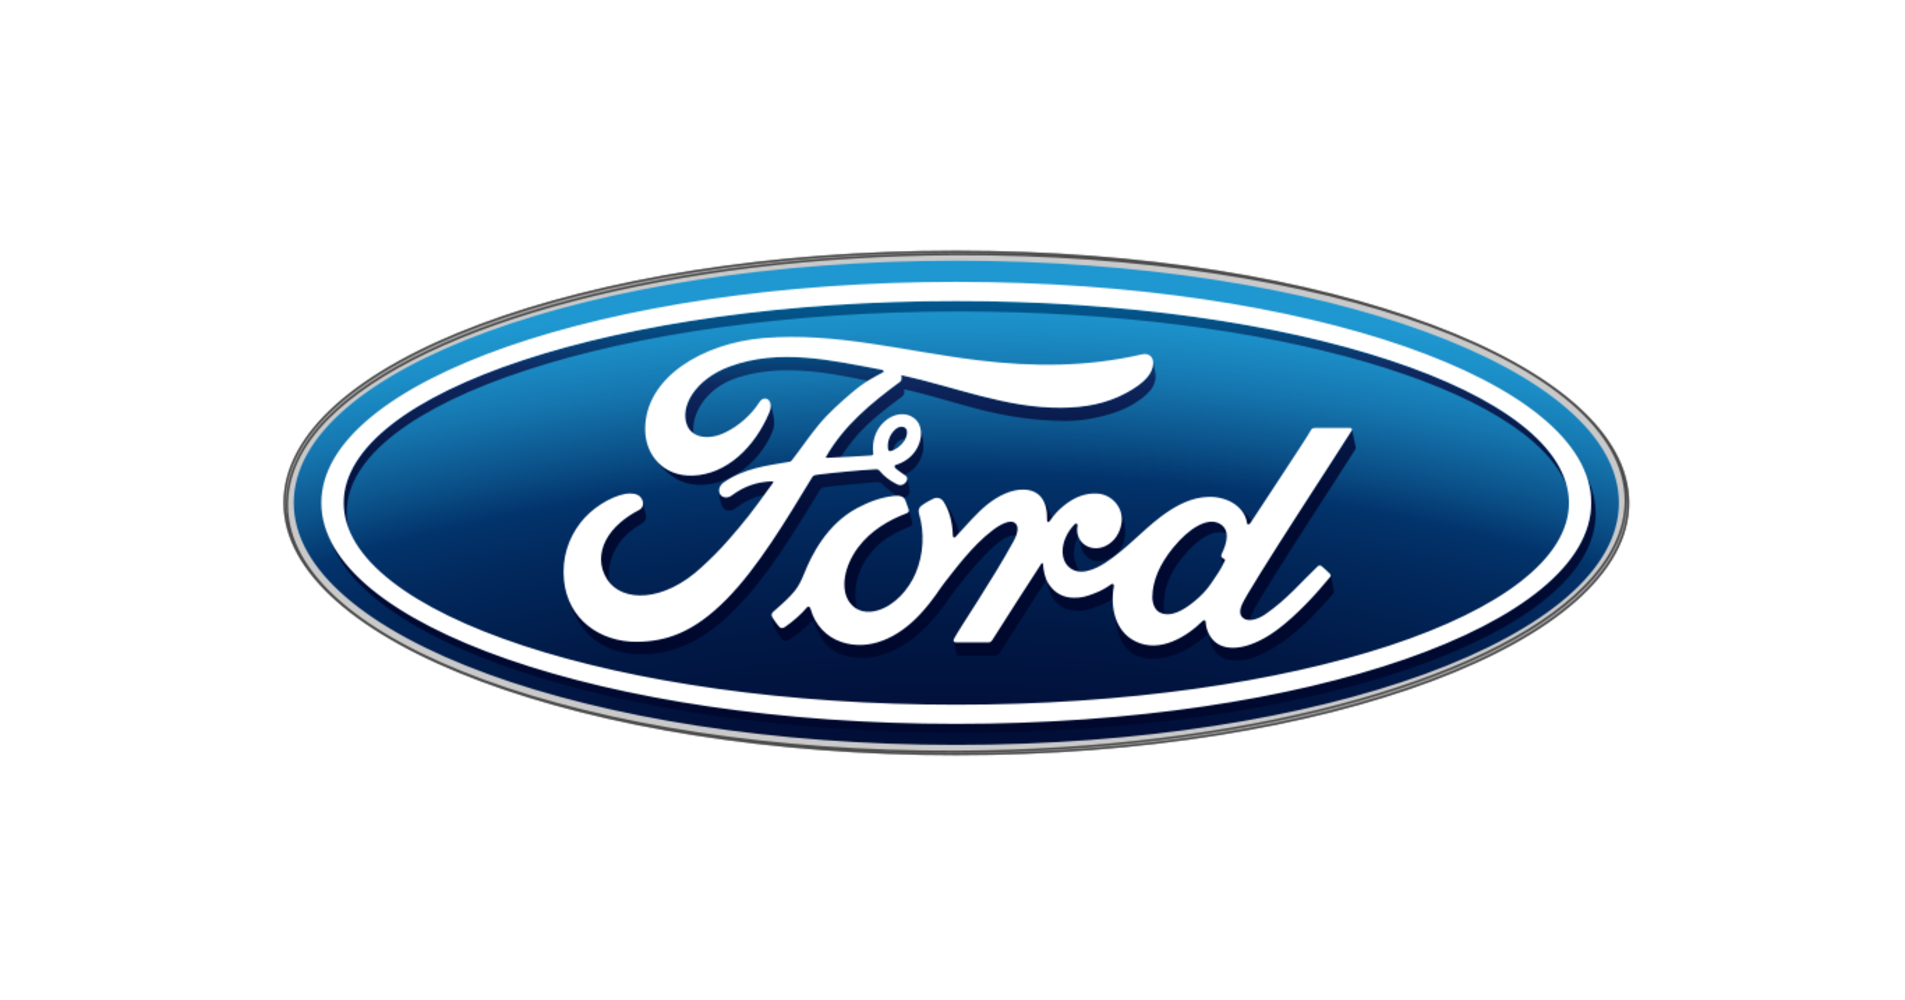 Ford will sponsor three events in 2017, including the inaugural World Championships in Key West